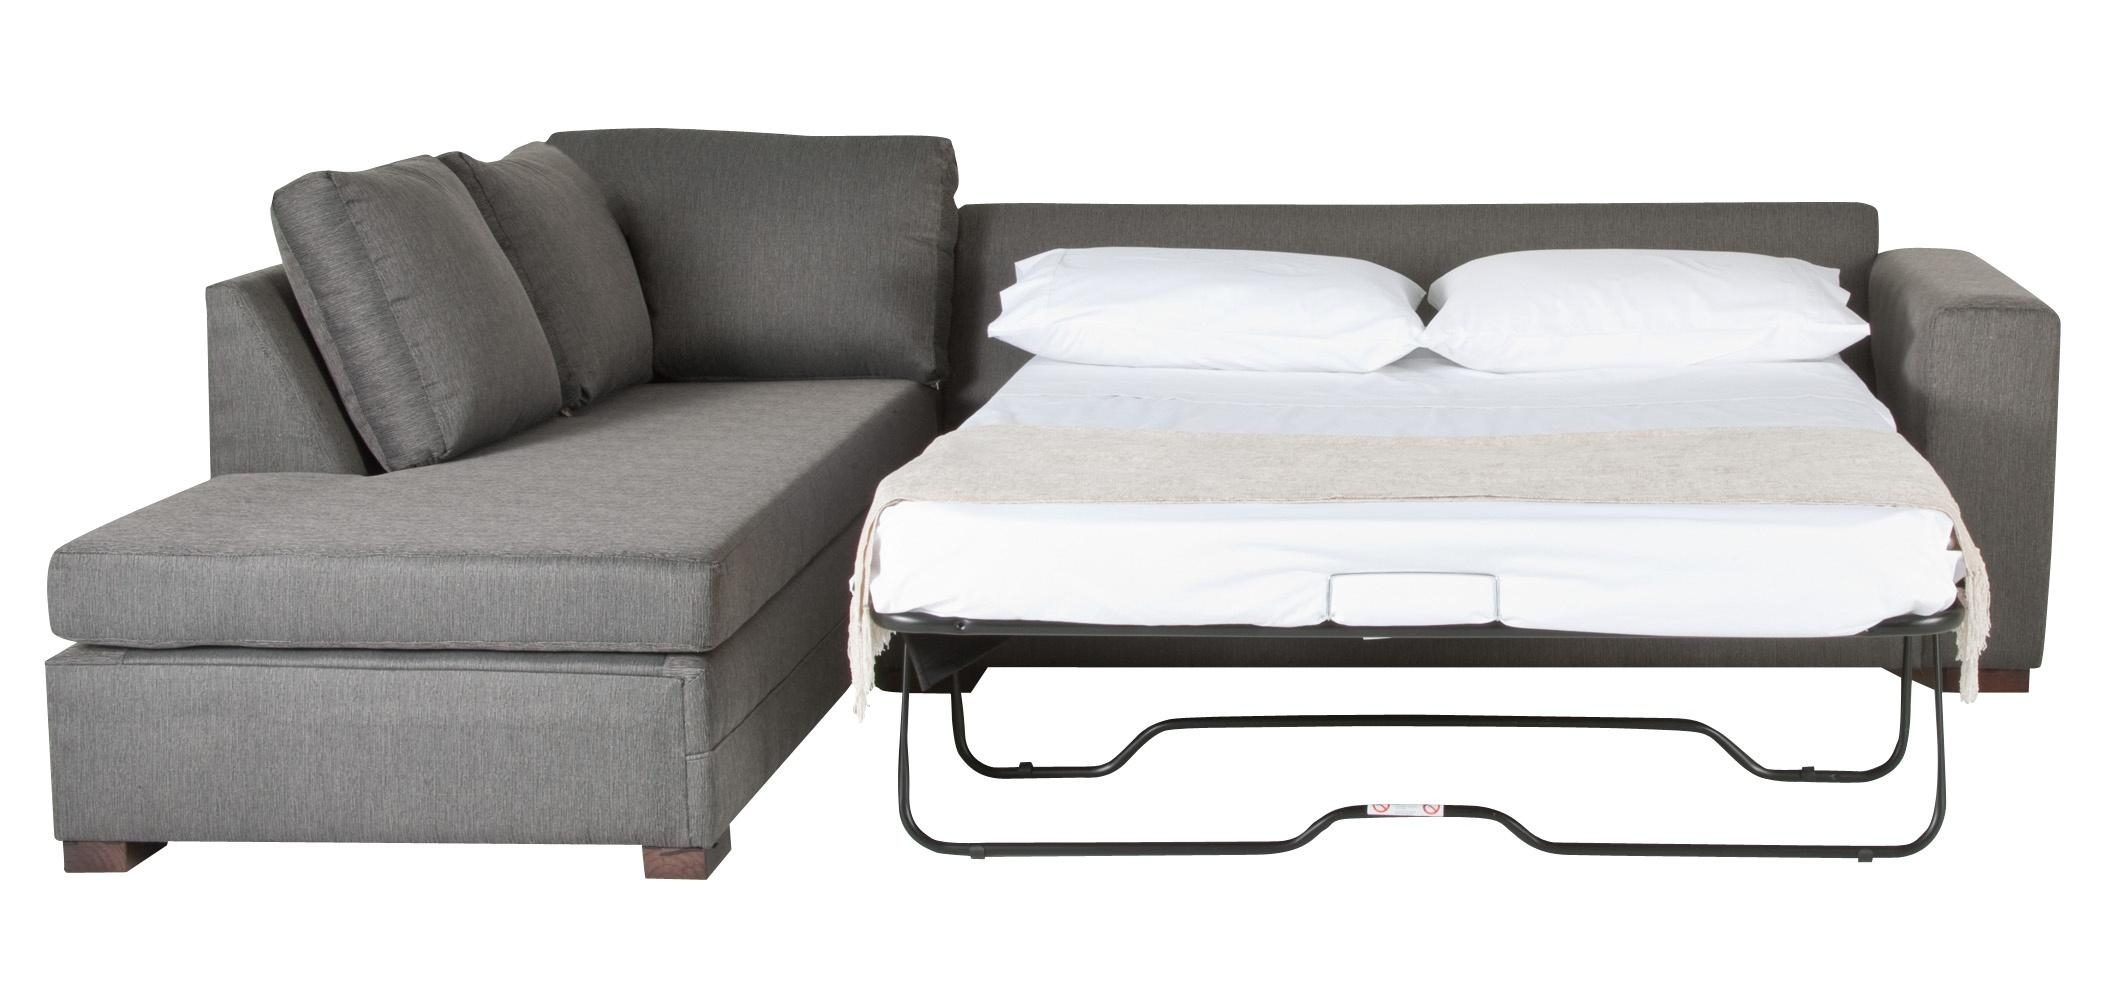 Fold Out Sectional Sleeper Sofa – Hotelsbacau For Braxton Sectional Sofas (Image 10 of 20)